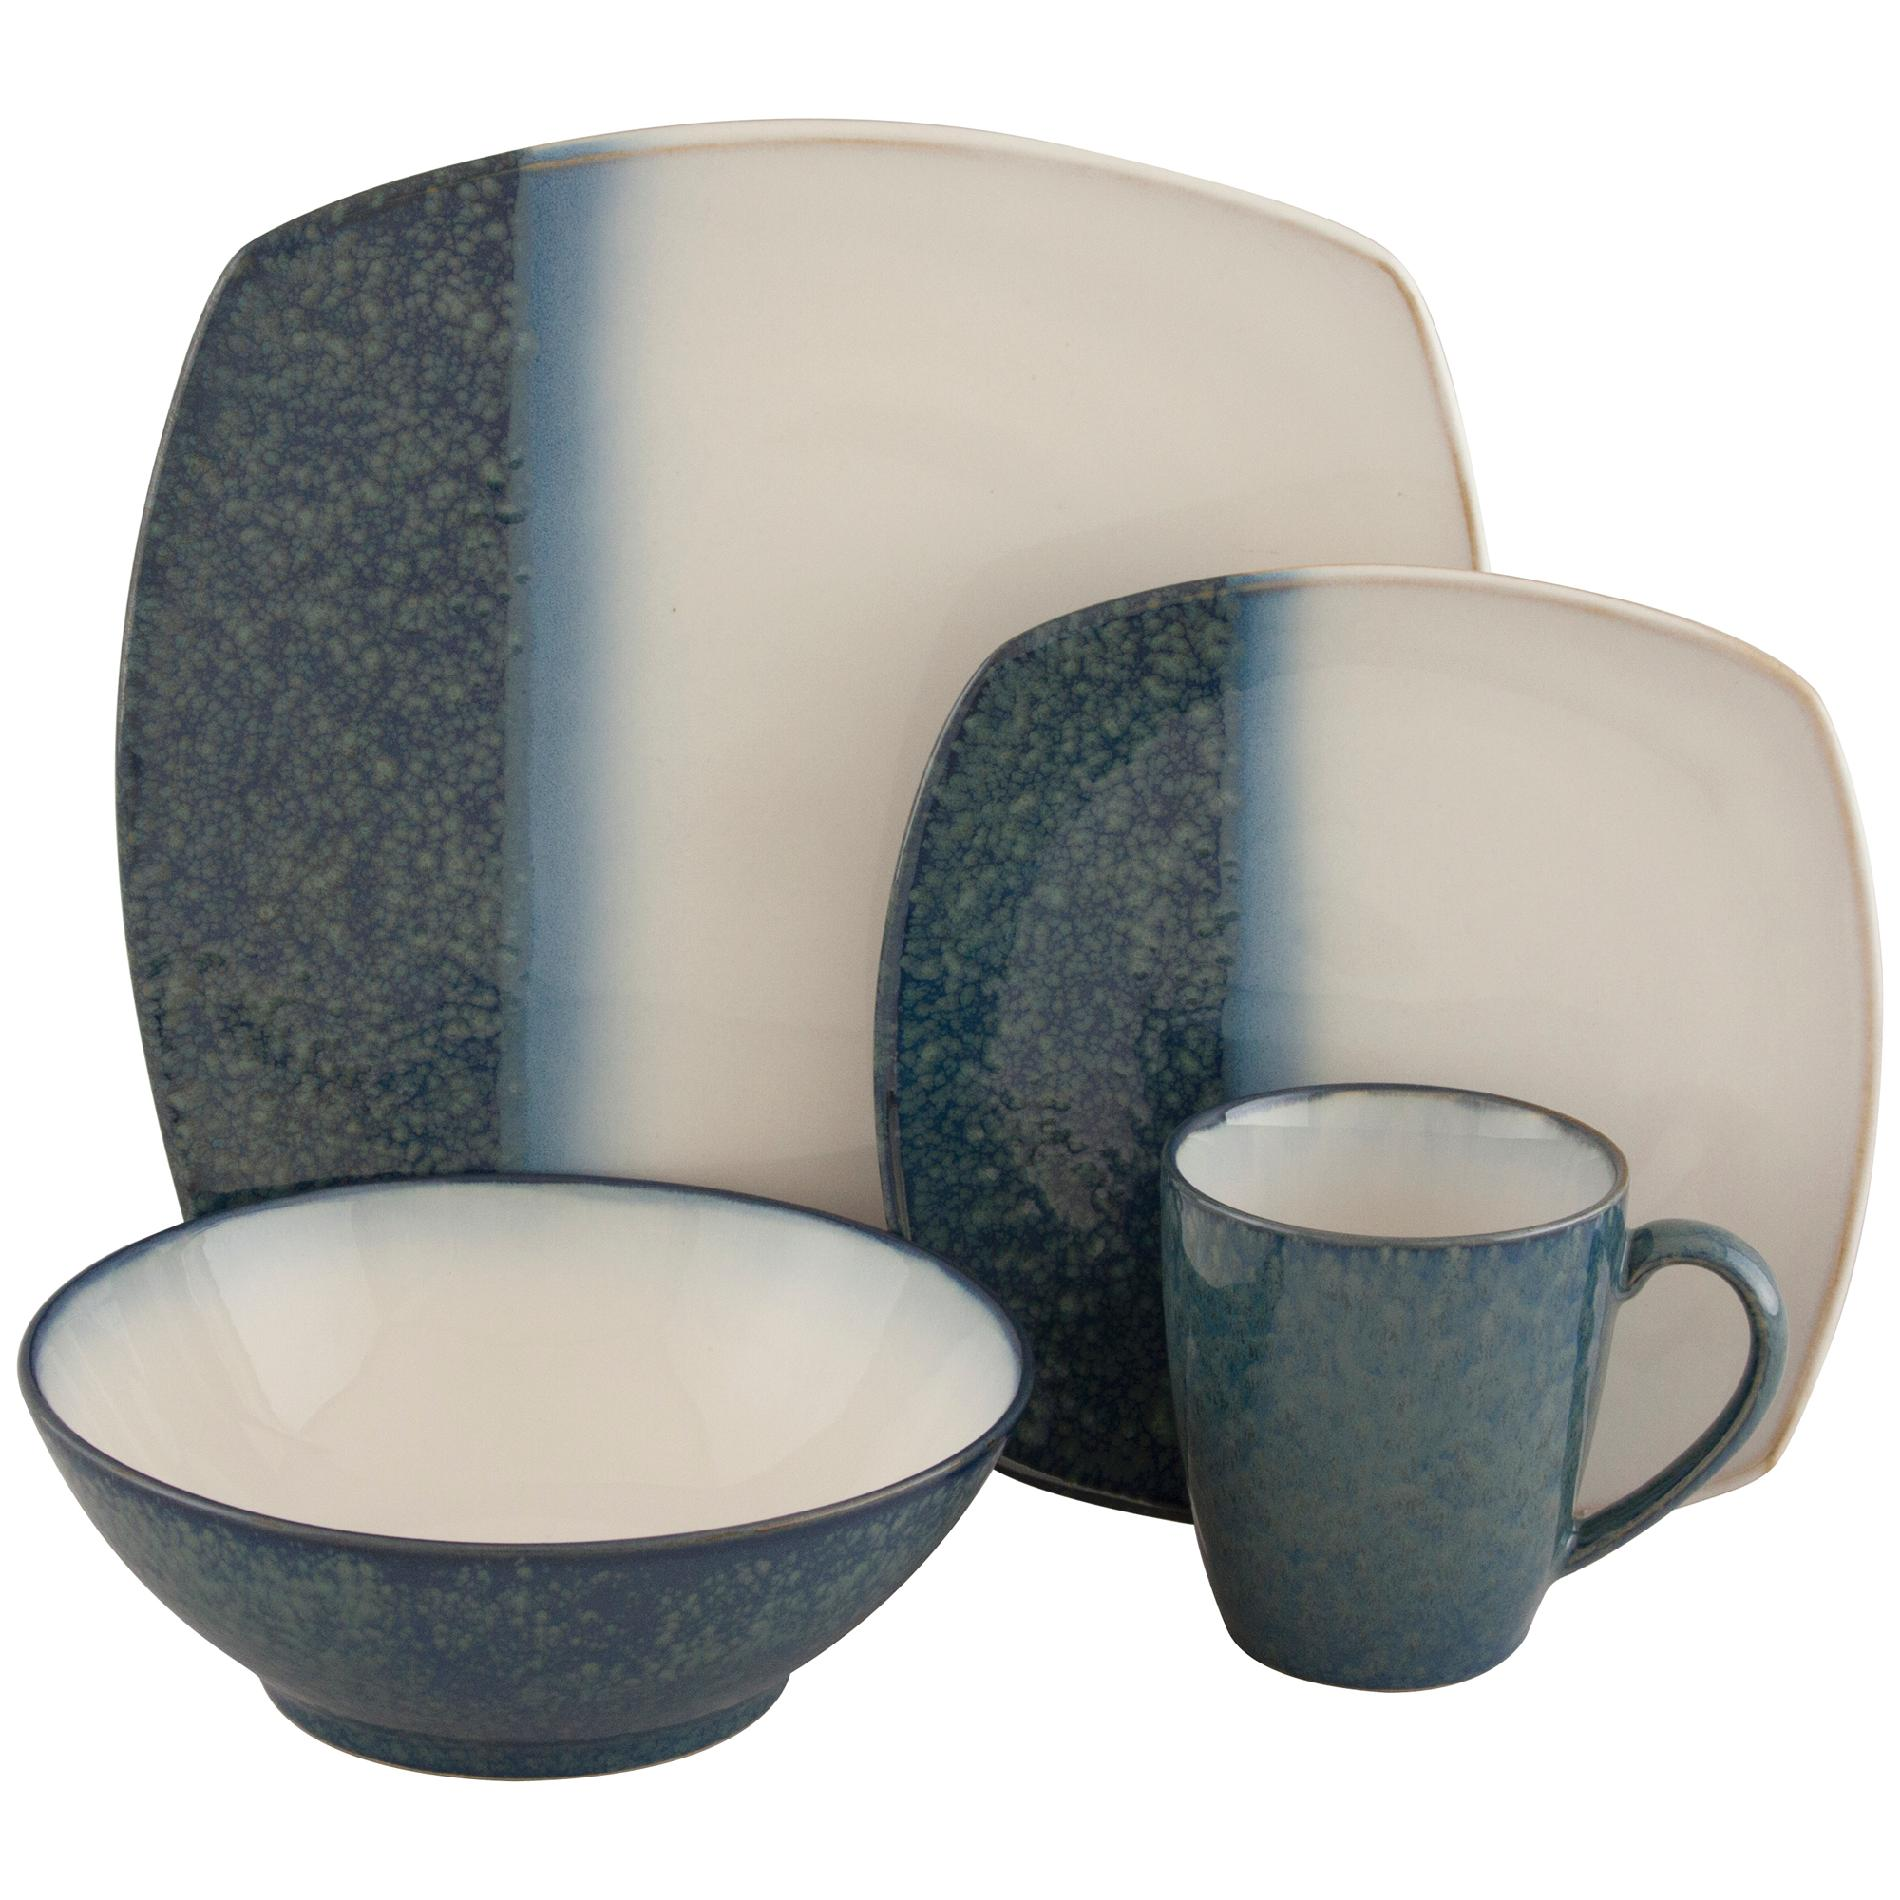 Pottery Dinnerware | Colorful Dinnerware | Stoneware Dinnerware Sets